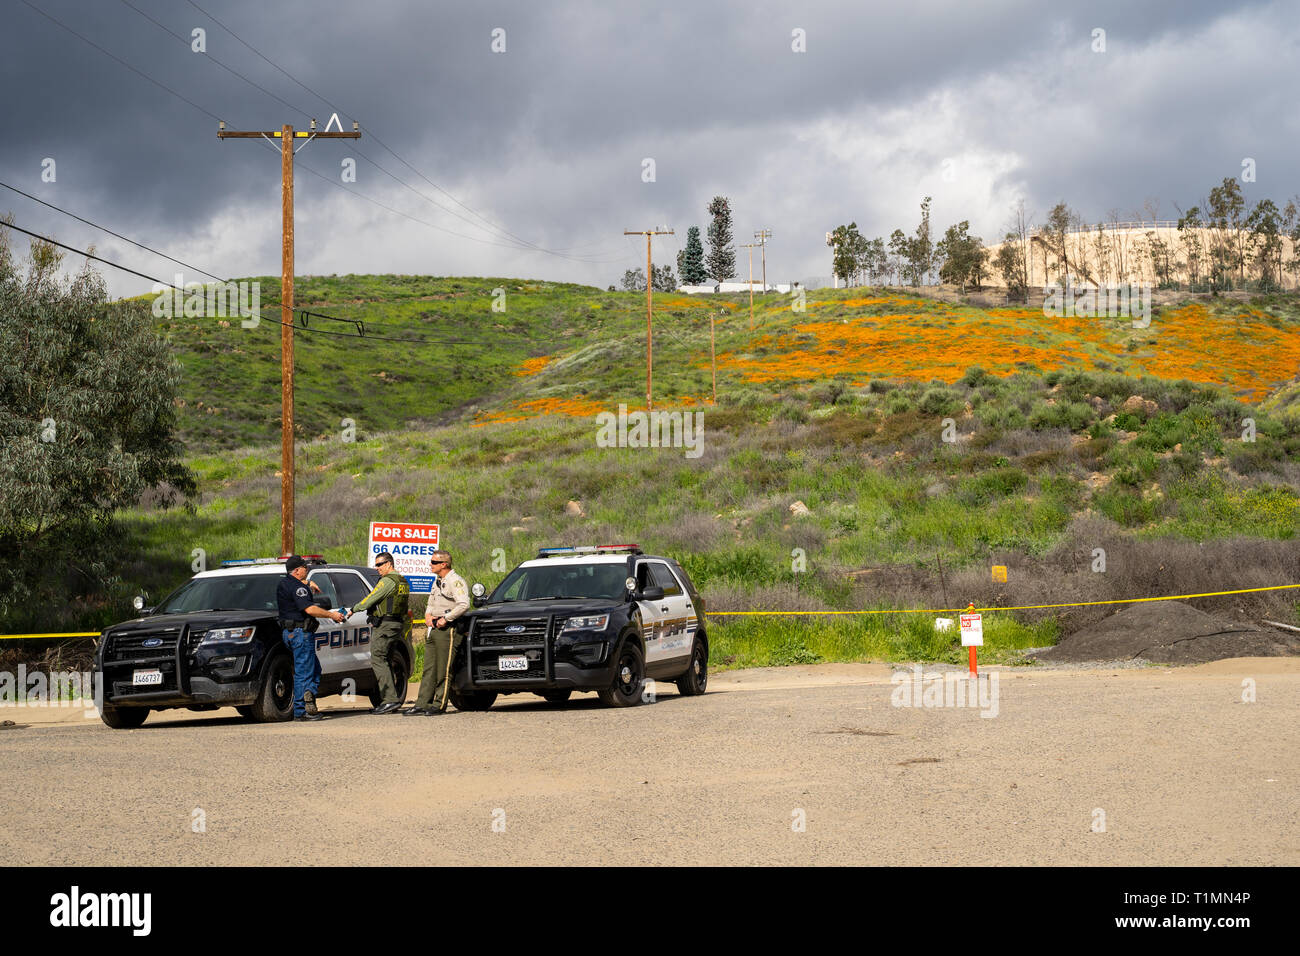 Lake Elsinore, California - March 20, 2019: Riverside County sheriff department and the Lake Elsinore Police patrol the Walker Canyon Poppy Fields due - Stock Image